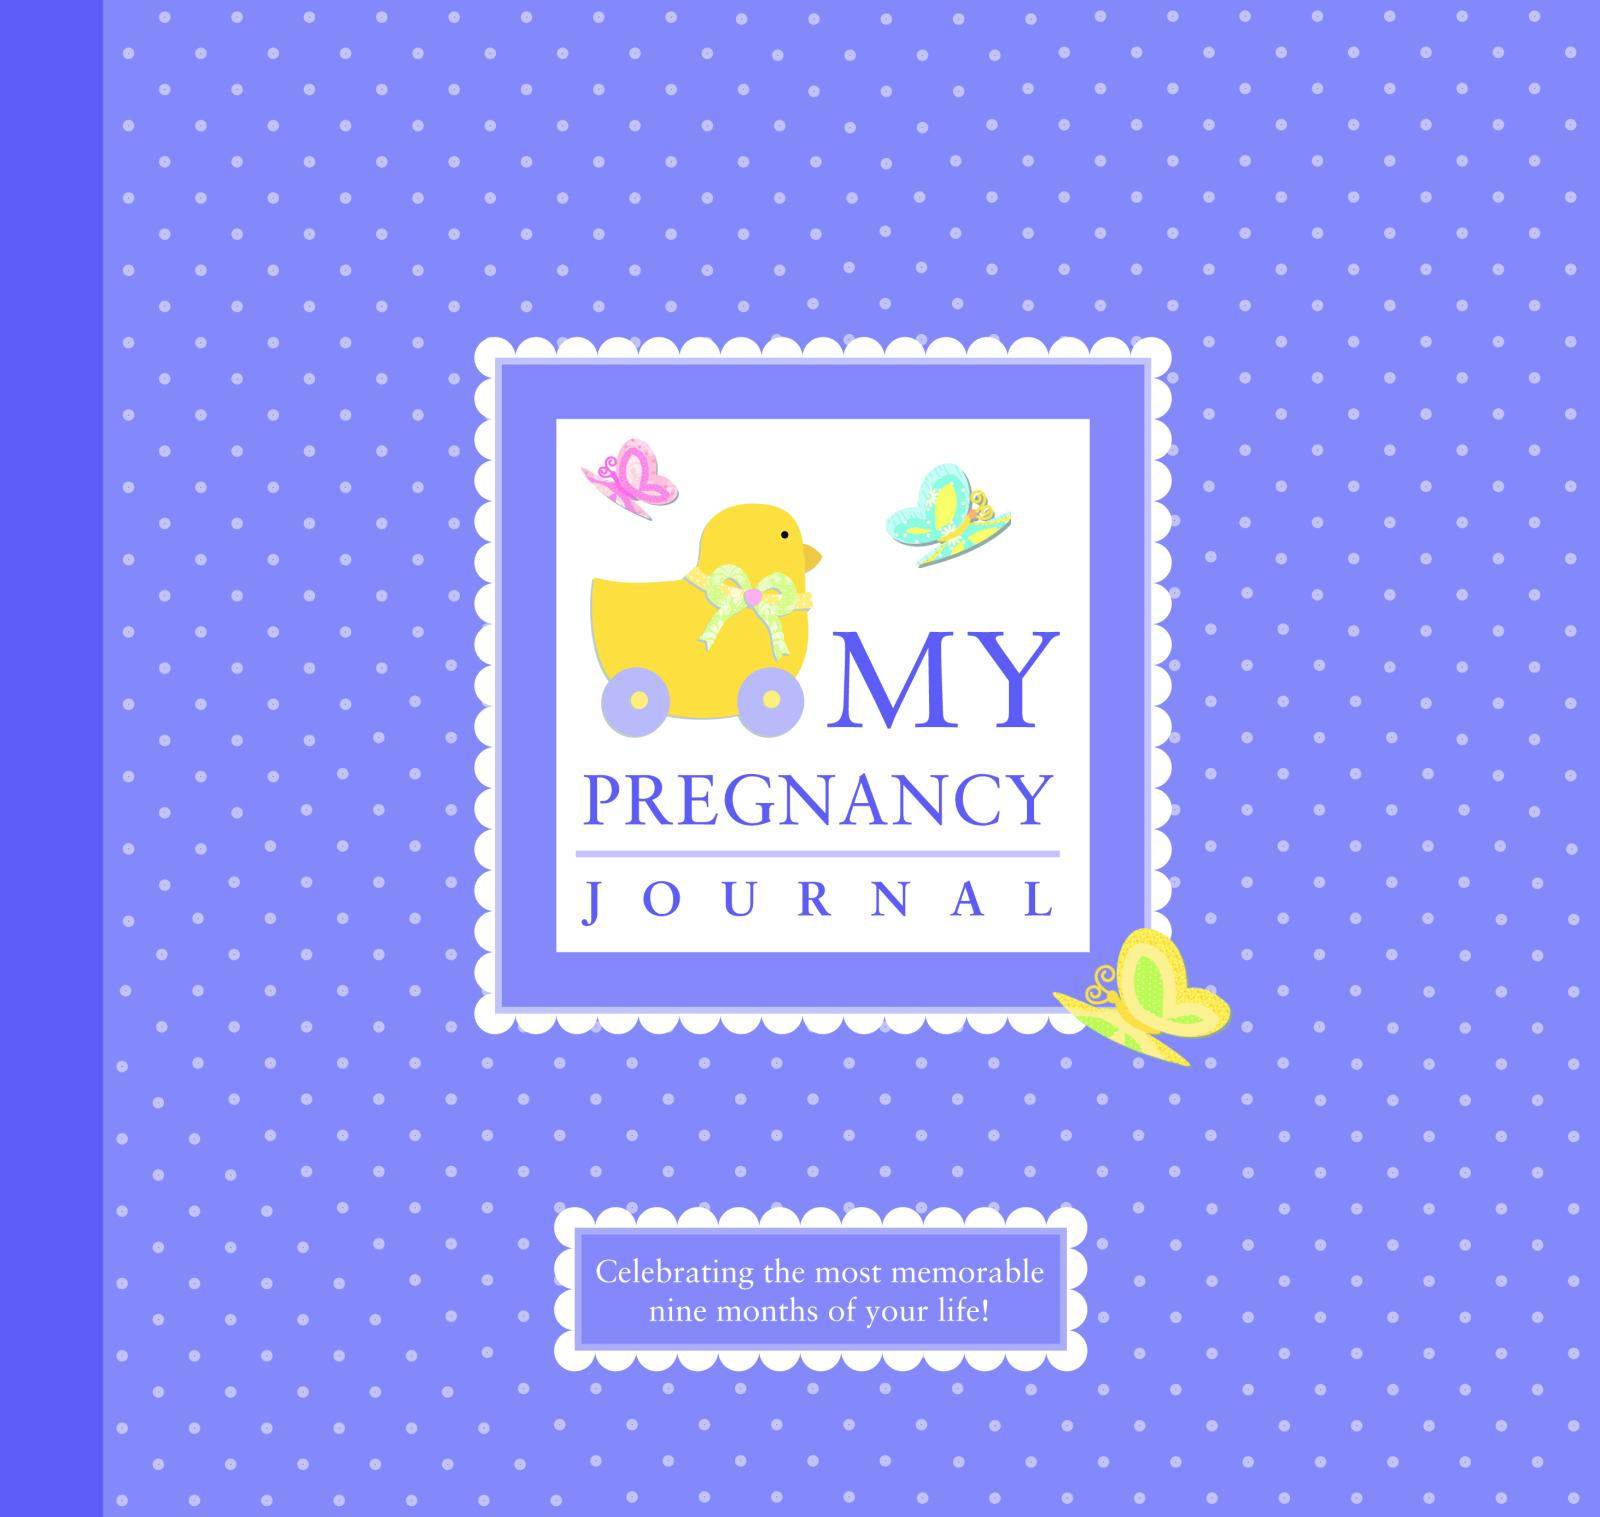 My Pregnancy Journal : Celebrating the Most Memorable Nine Months of Your Life!